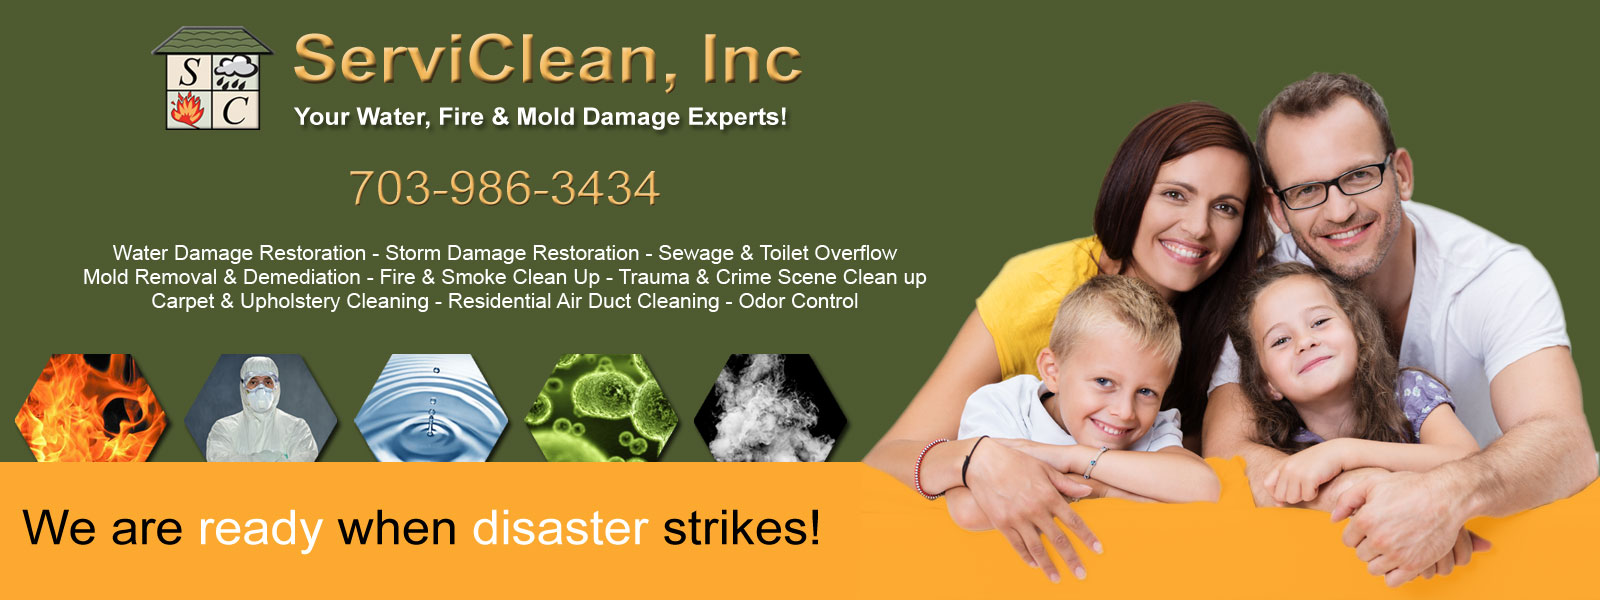 Serviclean Inc Water Damage Restoration Water